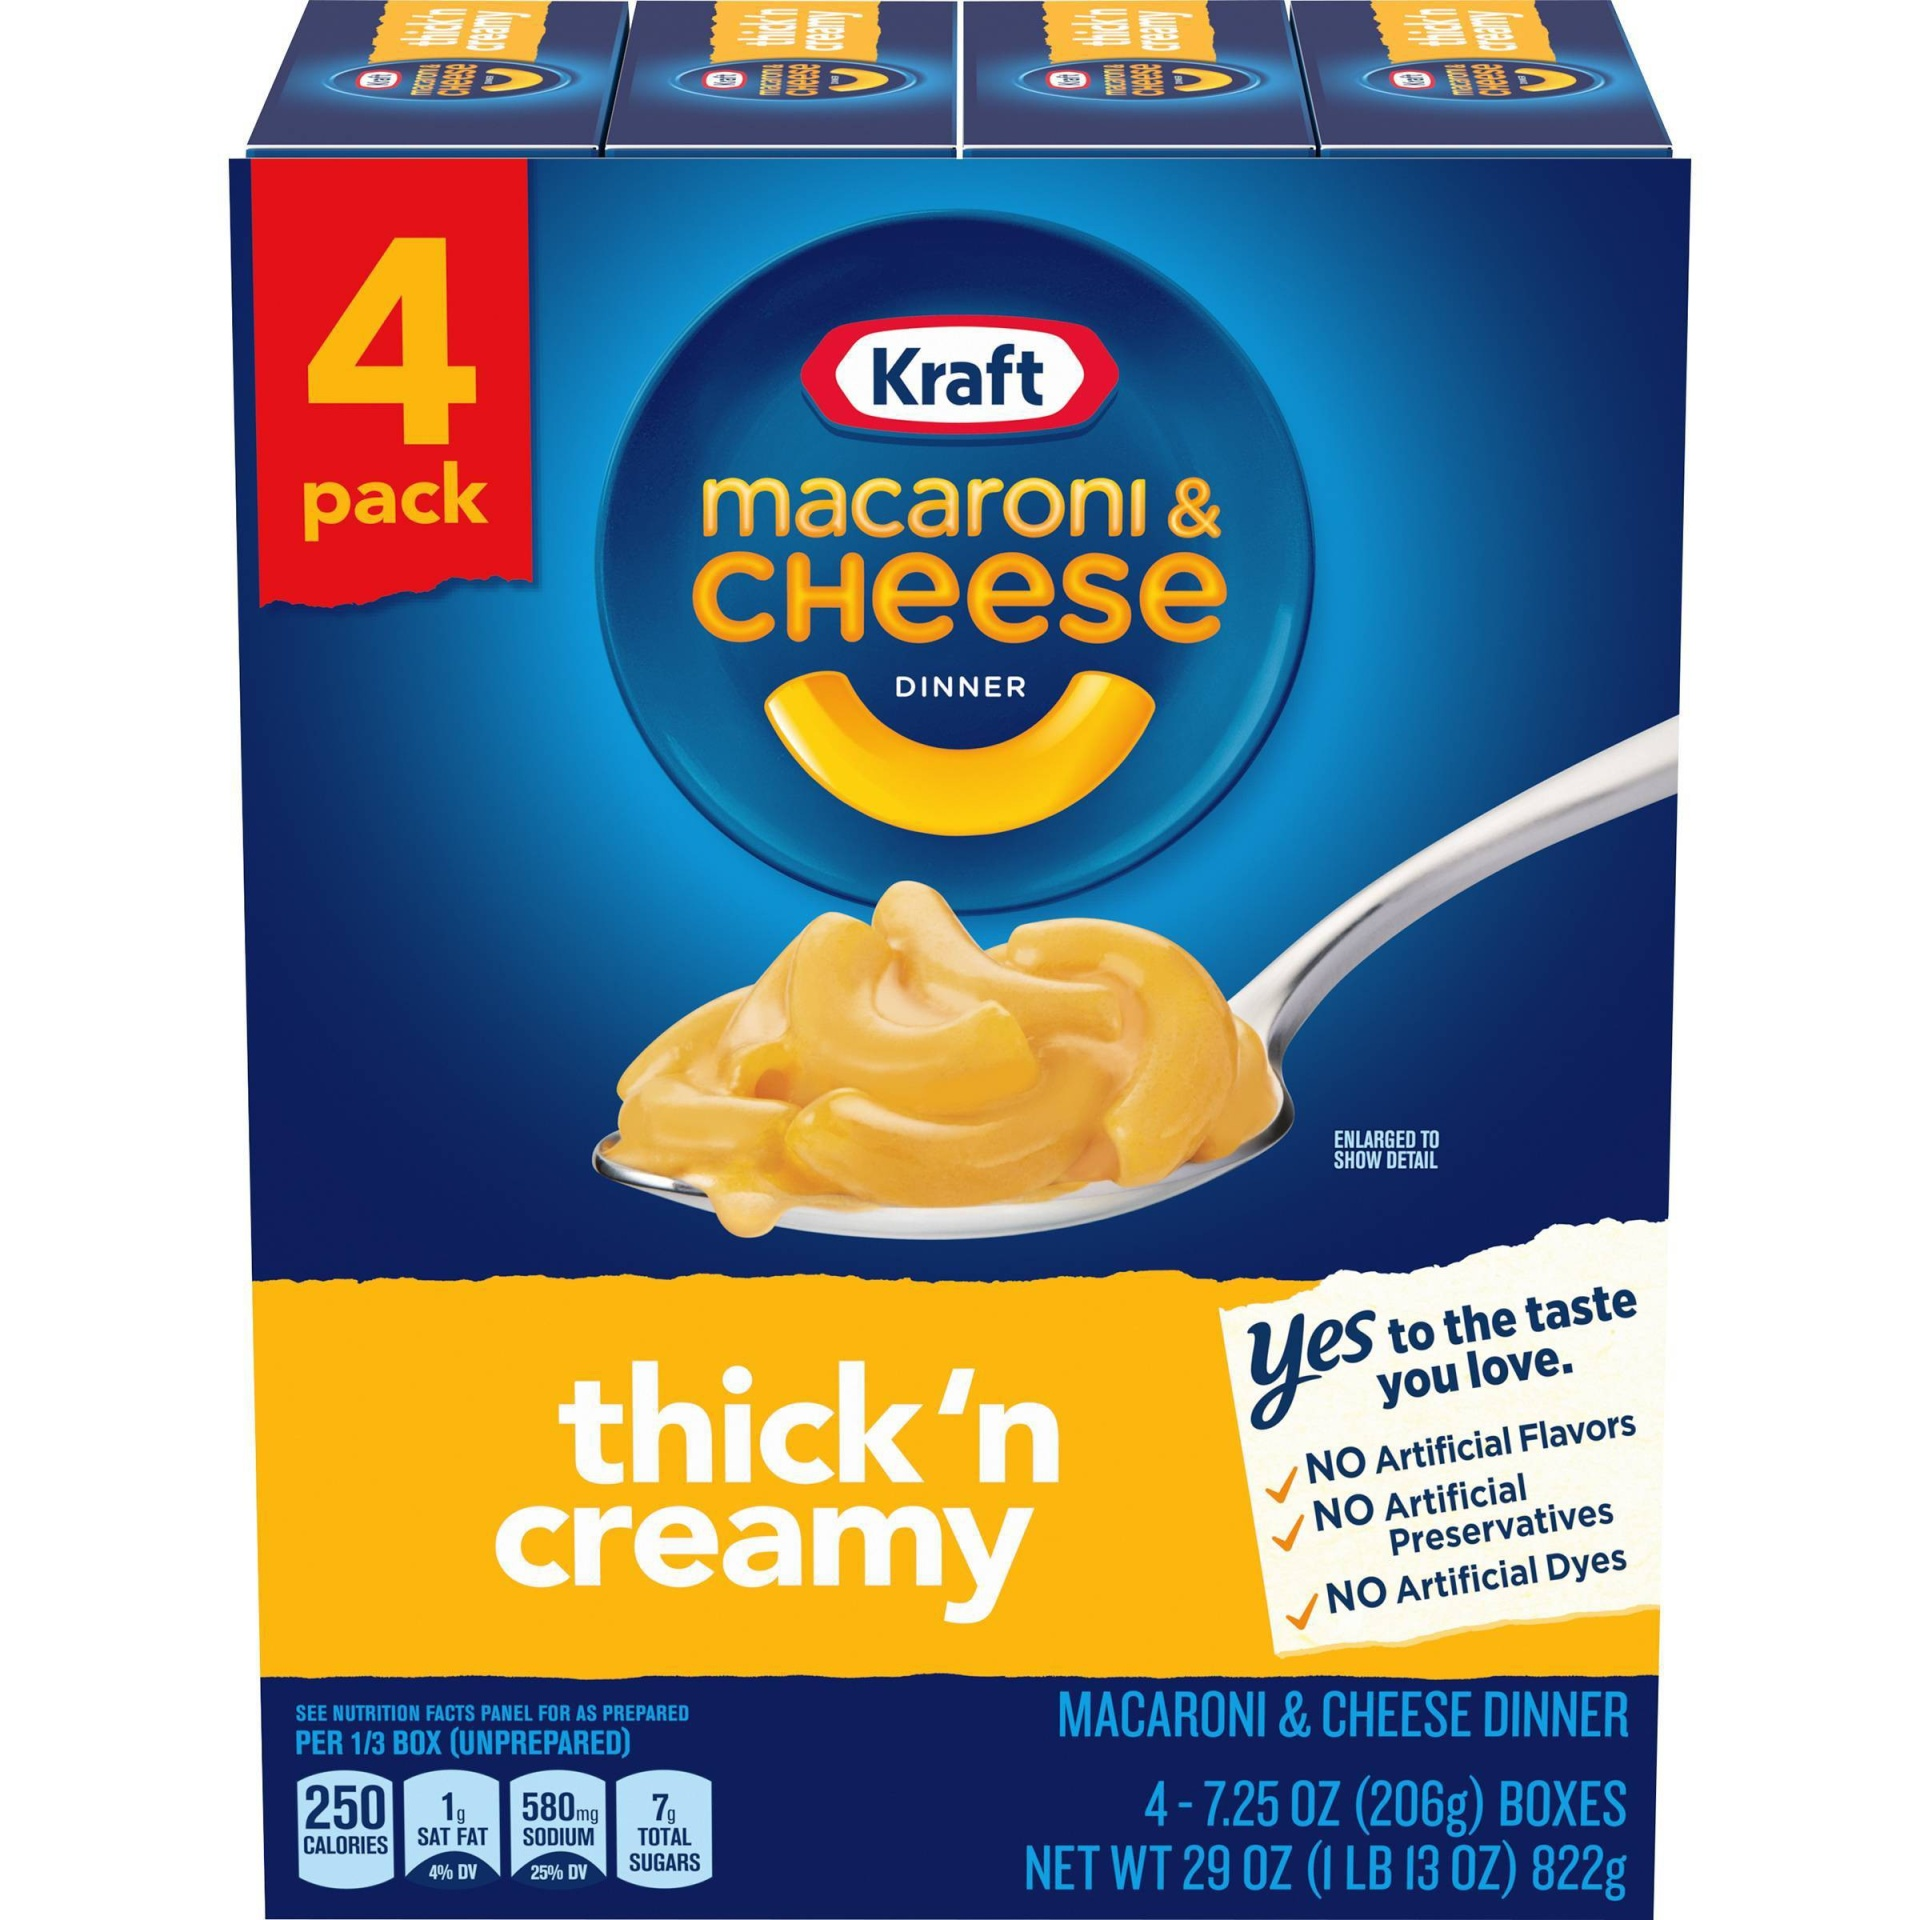 slide 1 of 5, Kraft Thick 'N Creamy Macaroni & Cheese Dinner 4-7.25 Oz. Boxes,